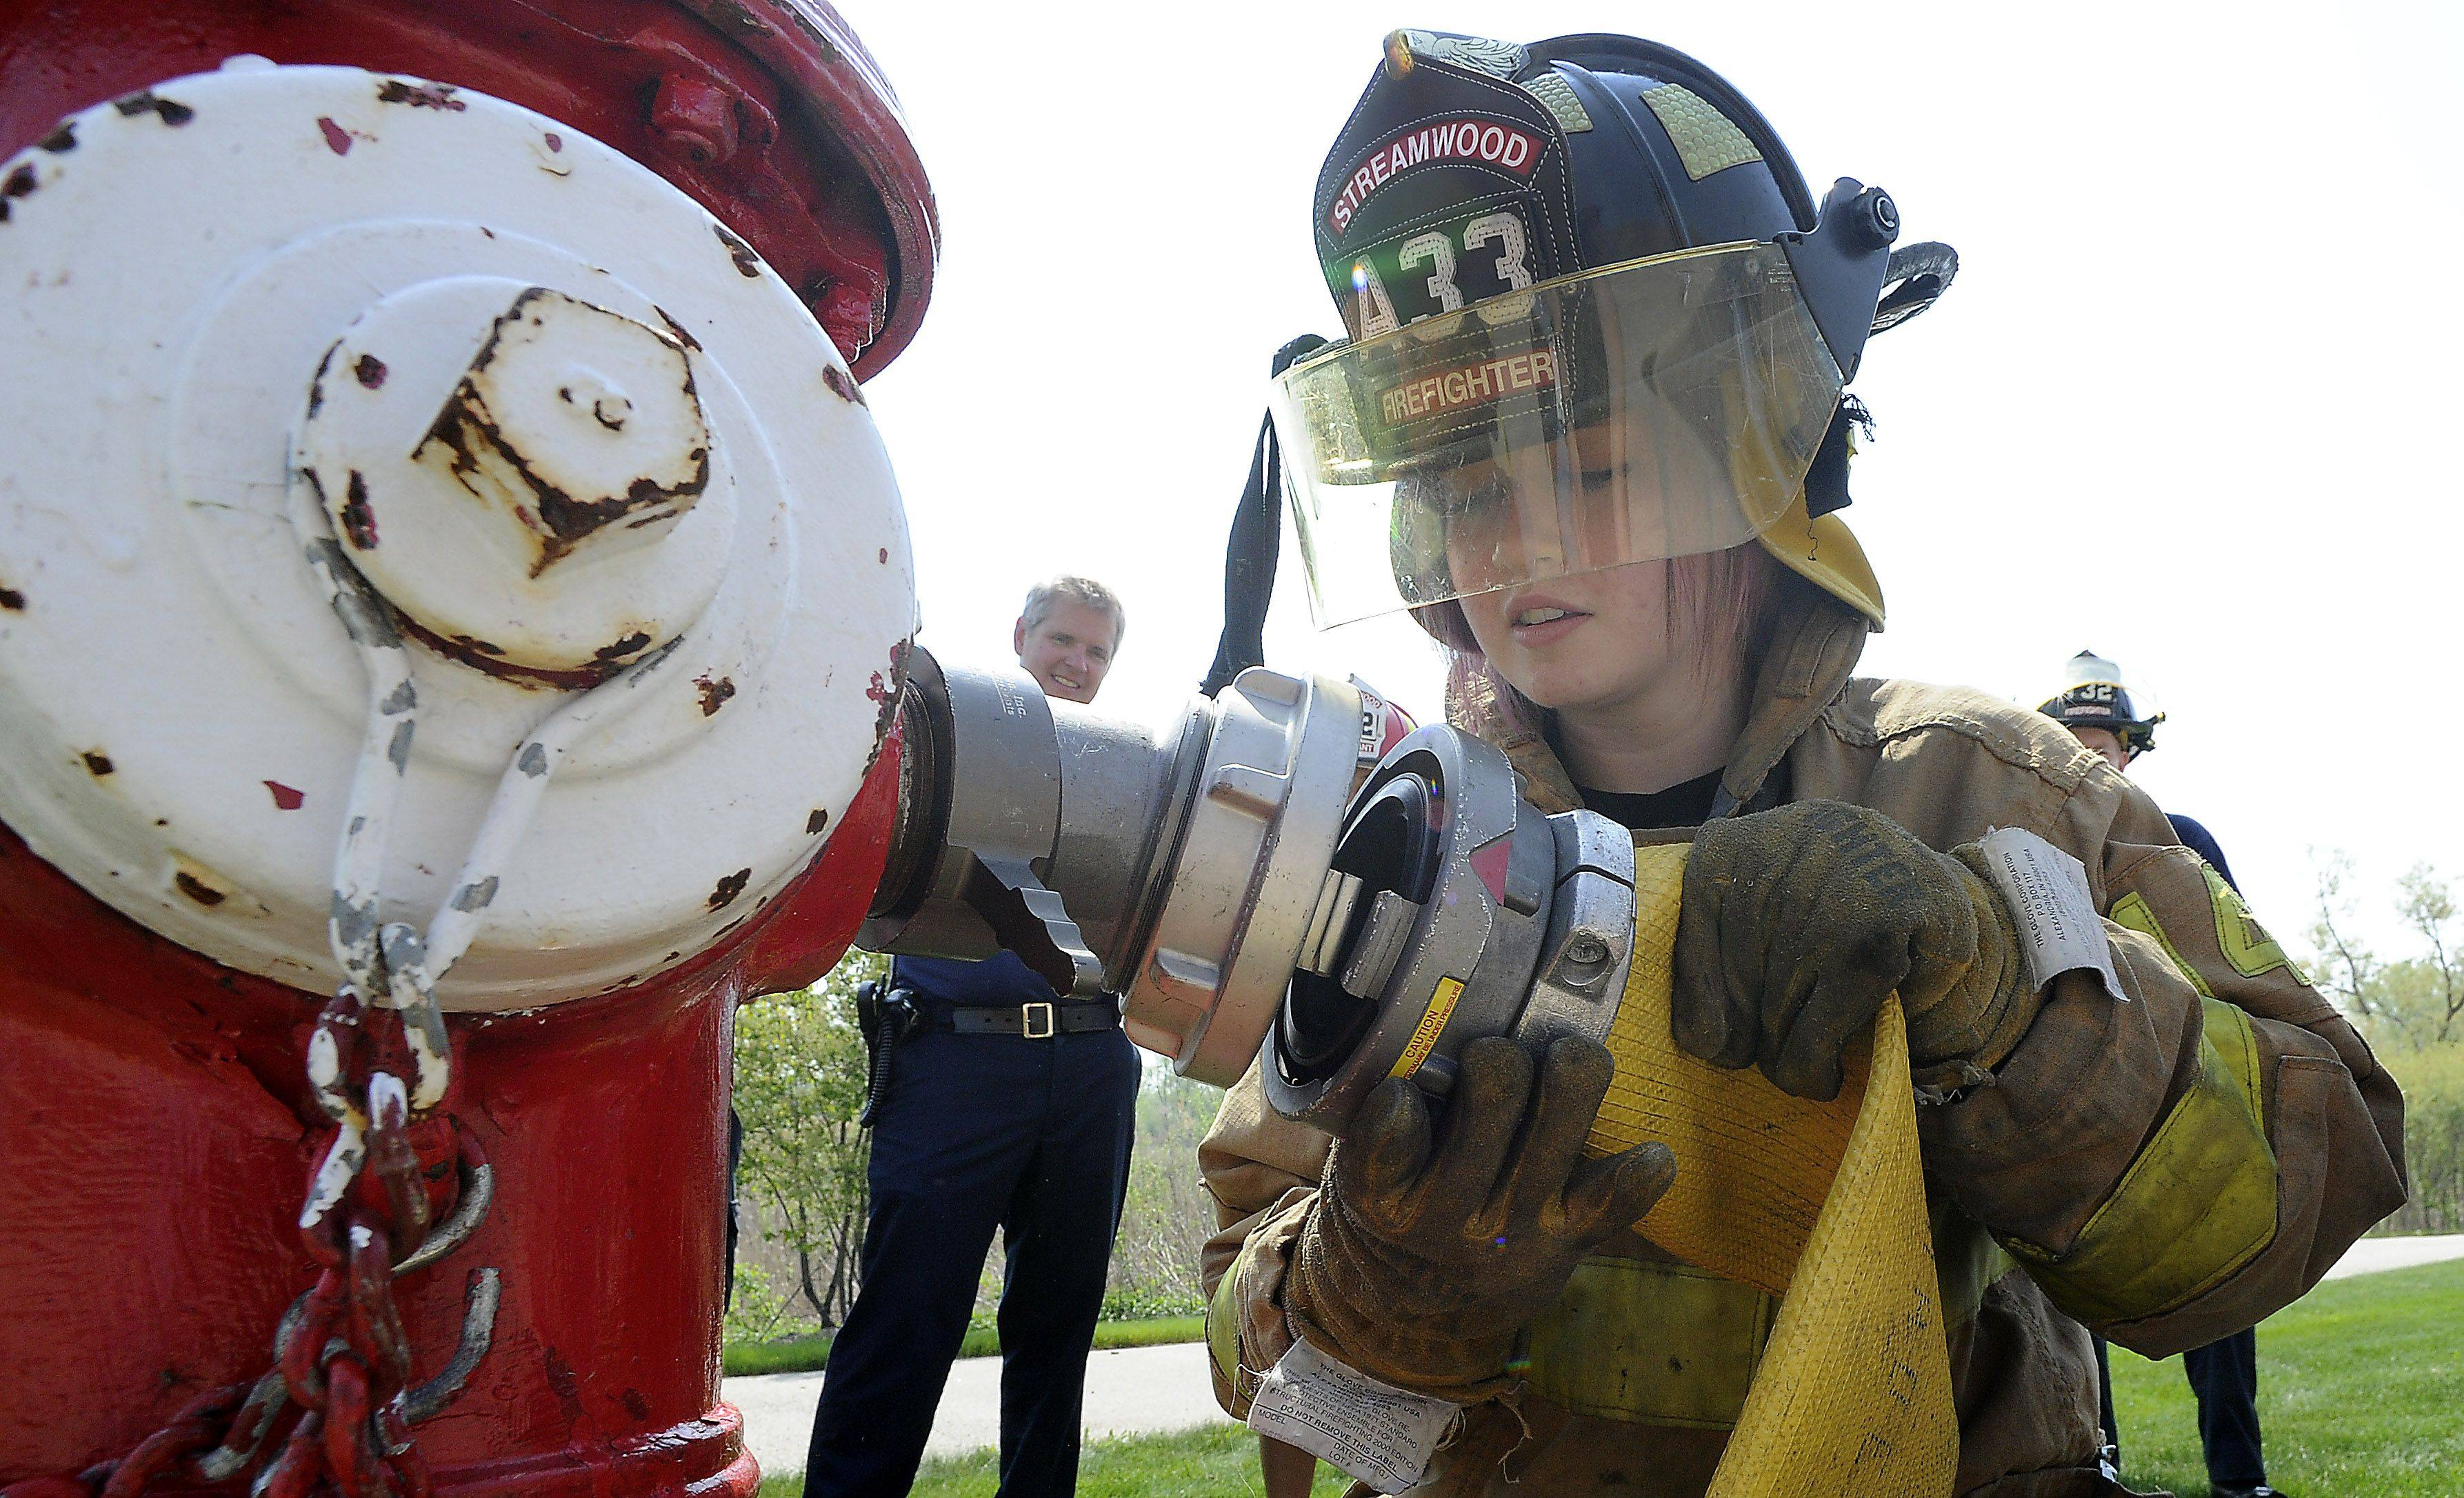 Streamwood High School senior Veronica Henderson shadows a Streamwood firefighter Wednesday during the school's 30th annual Student Government Day.